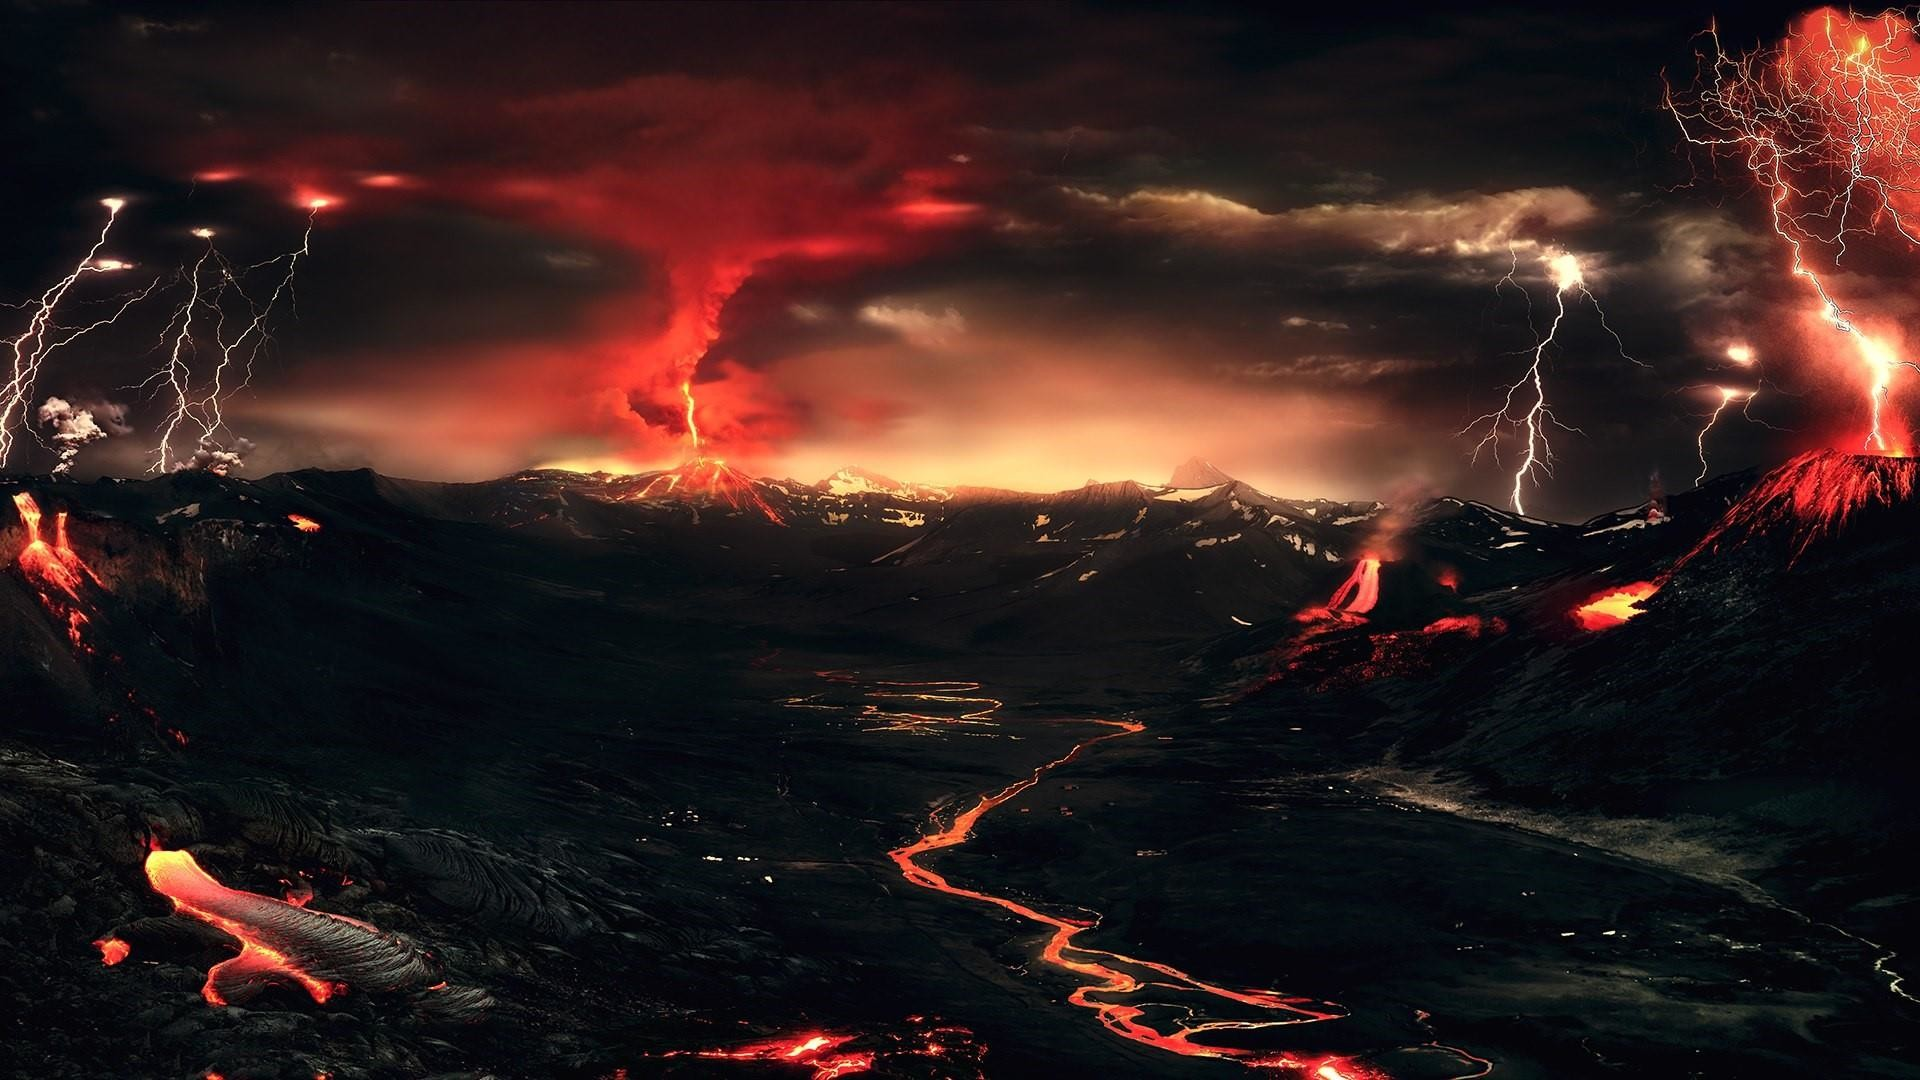 Res: 1920x1080, Volcanic Landscape Wallpaper   Wallpaper Studio 10   Tens of thousands HD  and UltraHD wallpapers for Android, Windows and Xbox